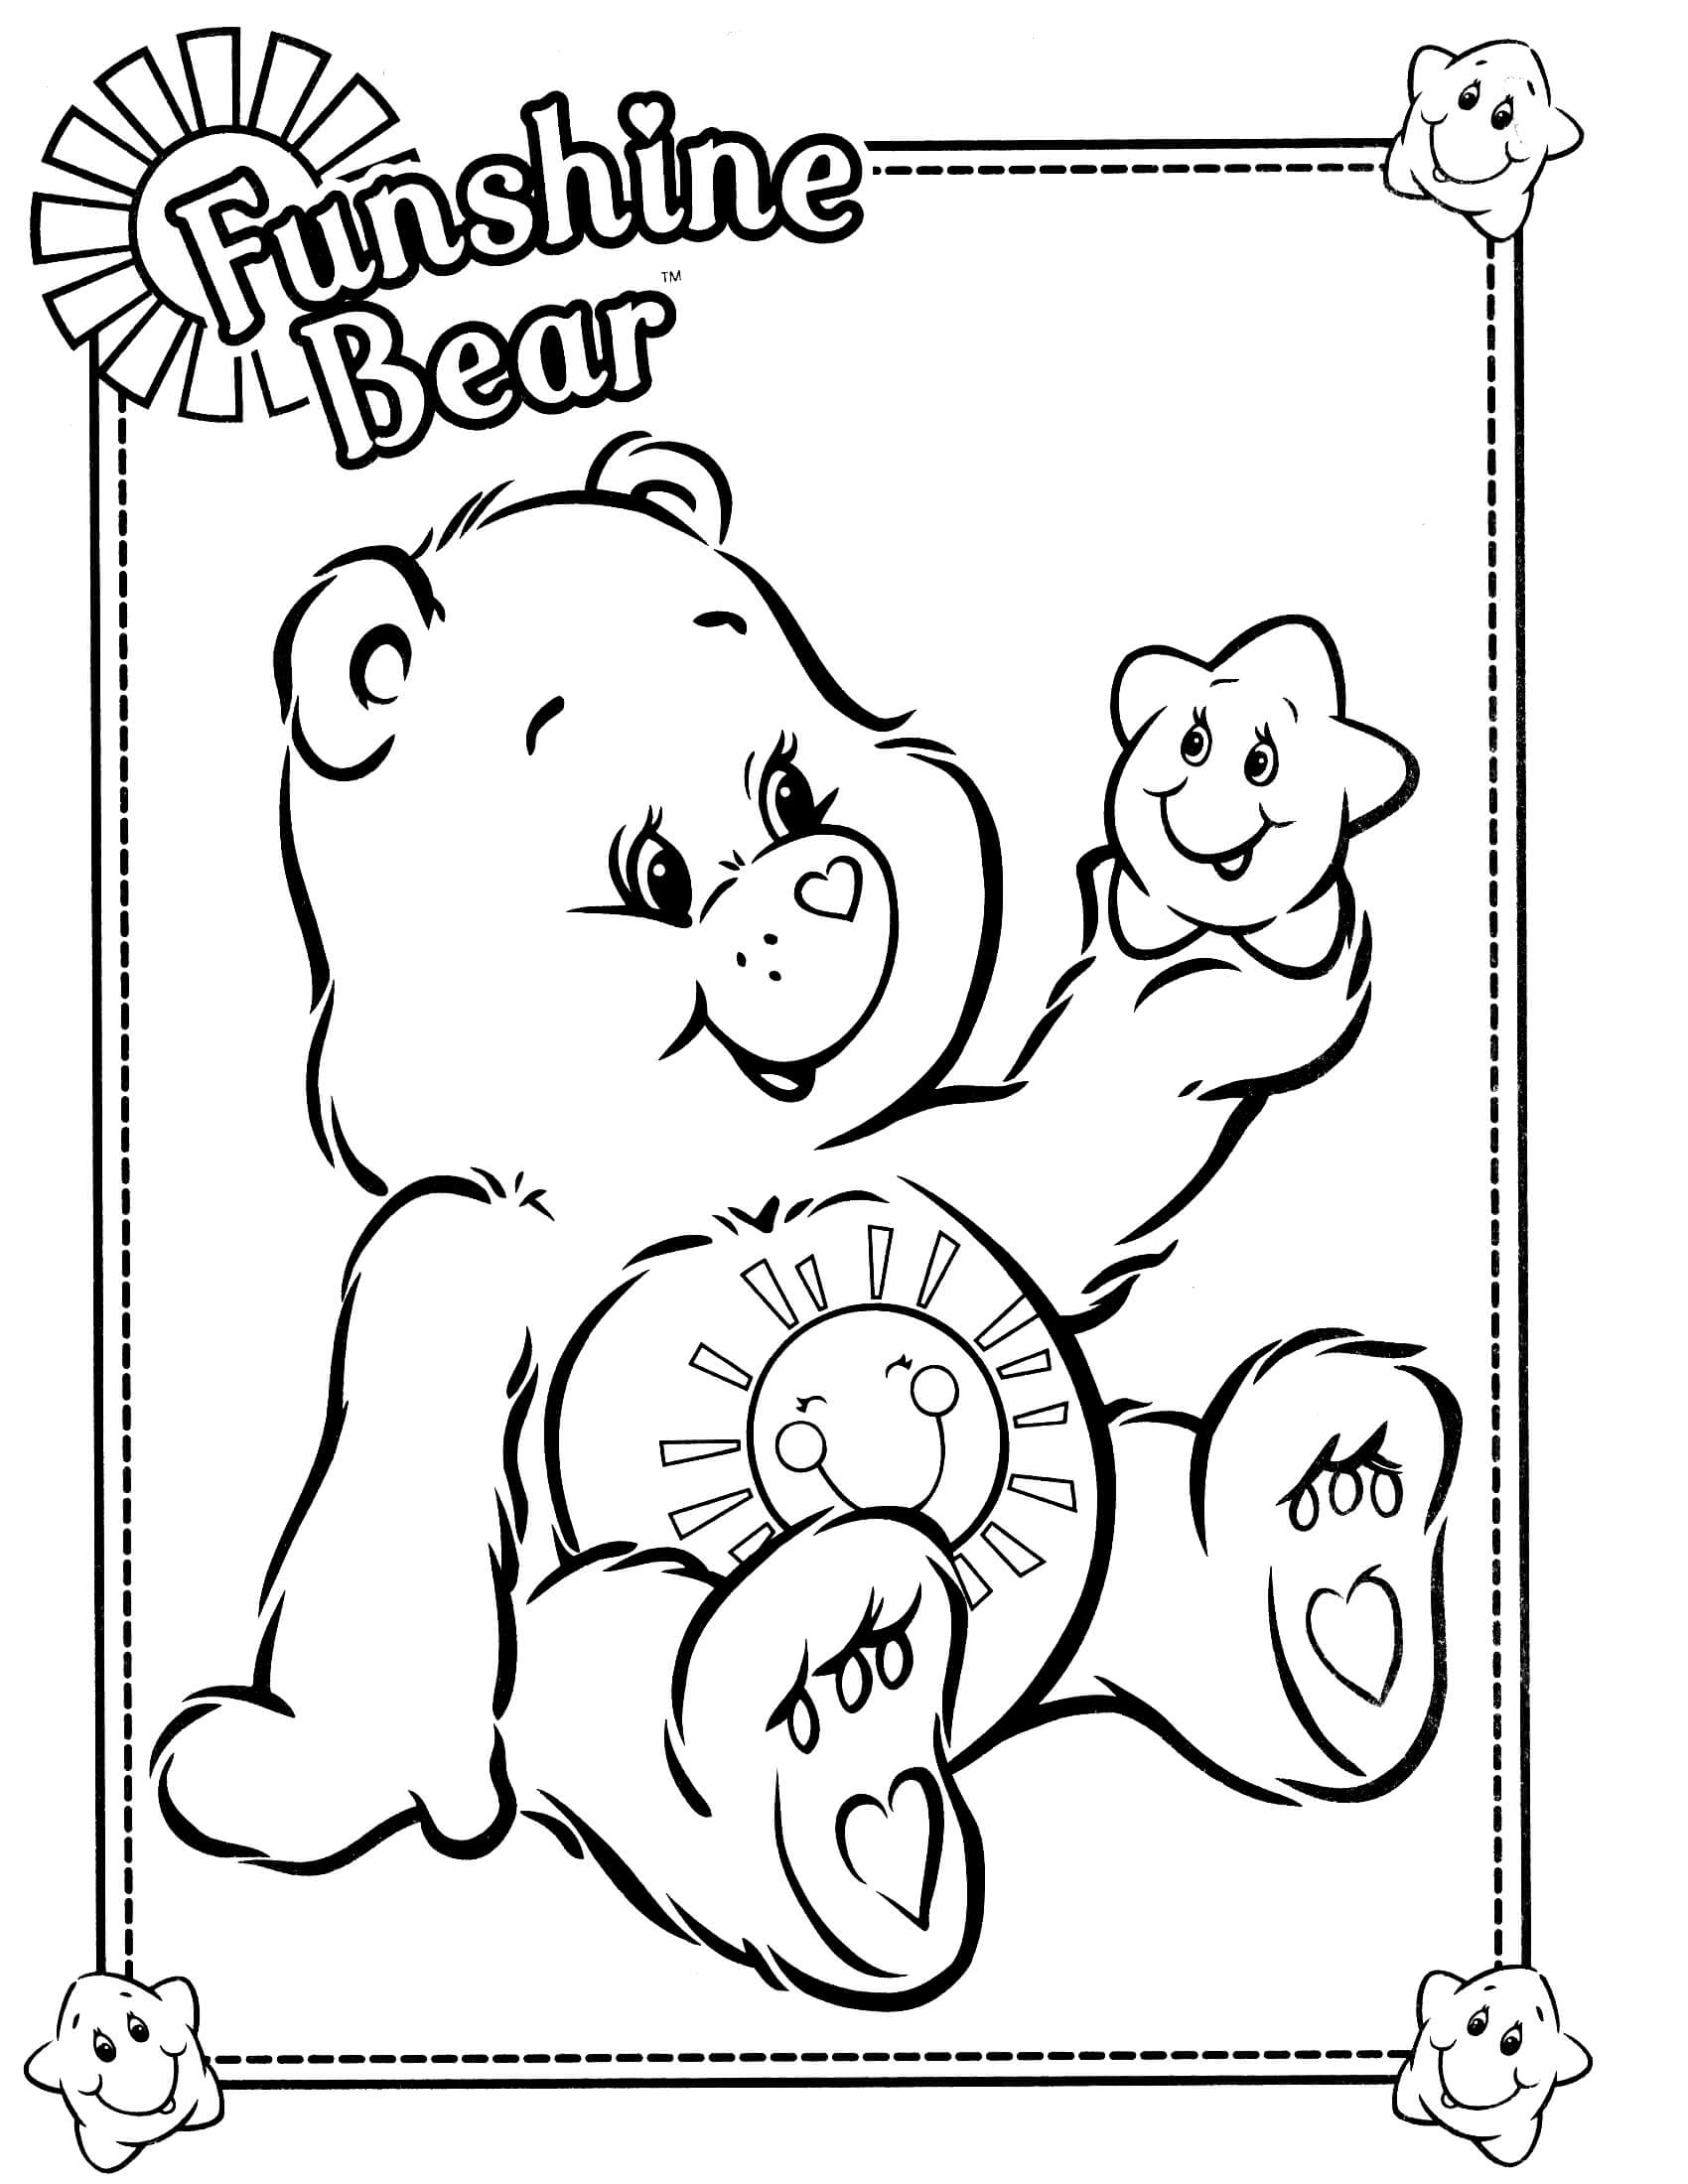 coloring pages of bears cute polar bear coloring page woo jr kids activities of coloring bears pages